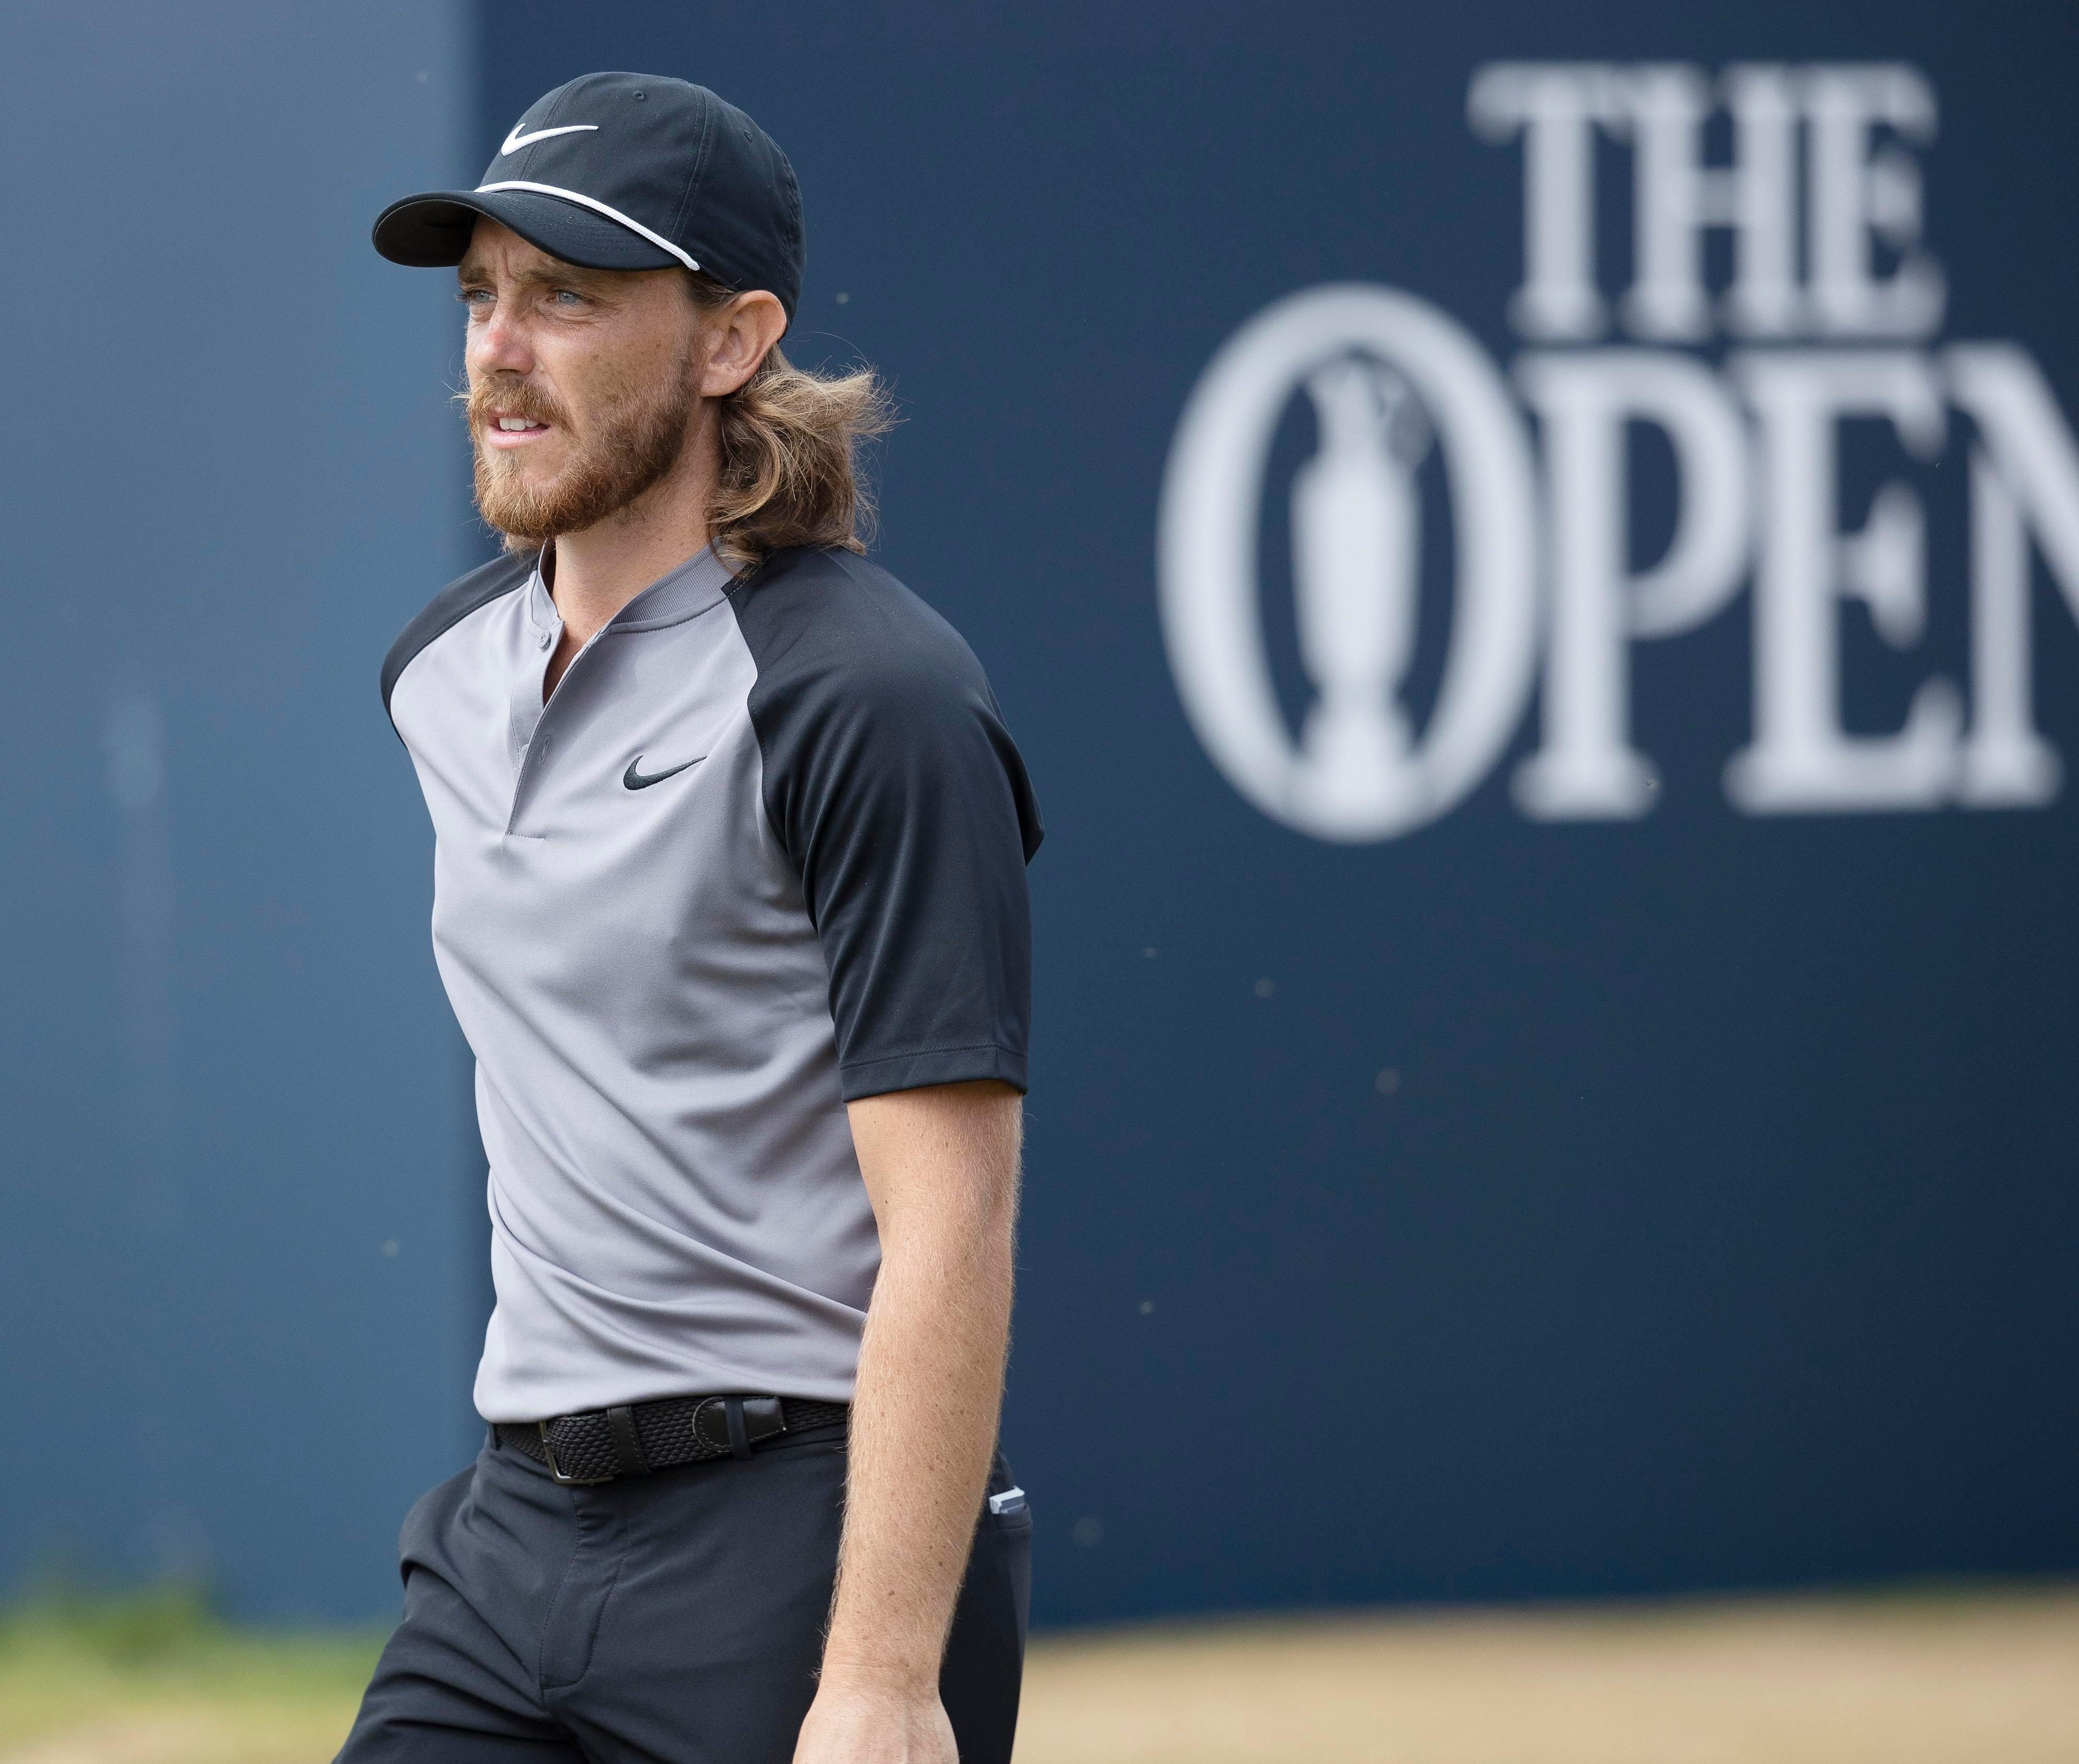 Tommy Fleetwood was left on the fringe, four shots off the lead following a 71